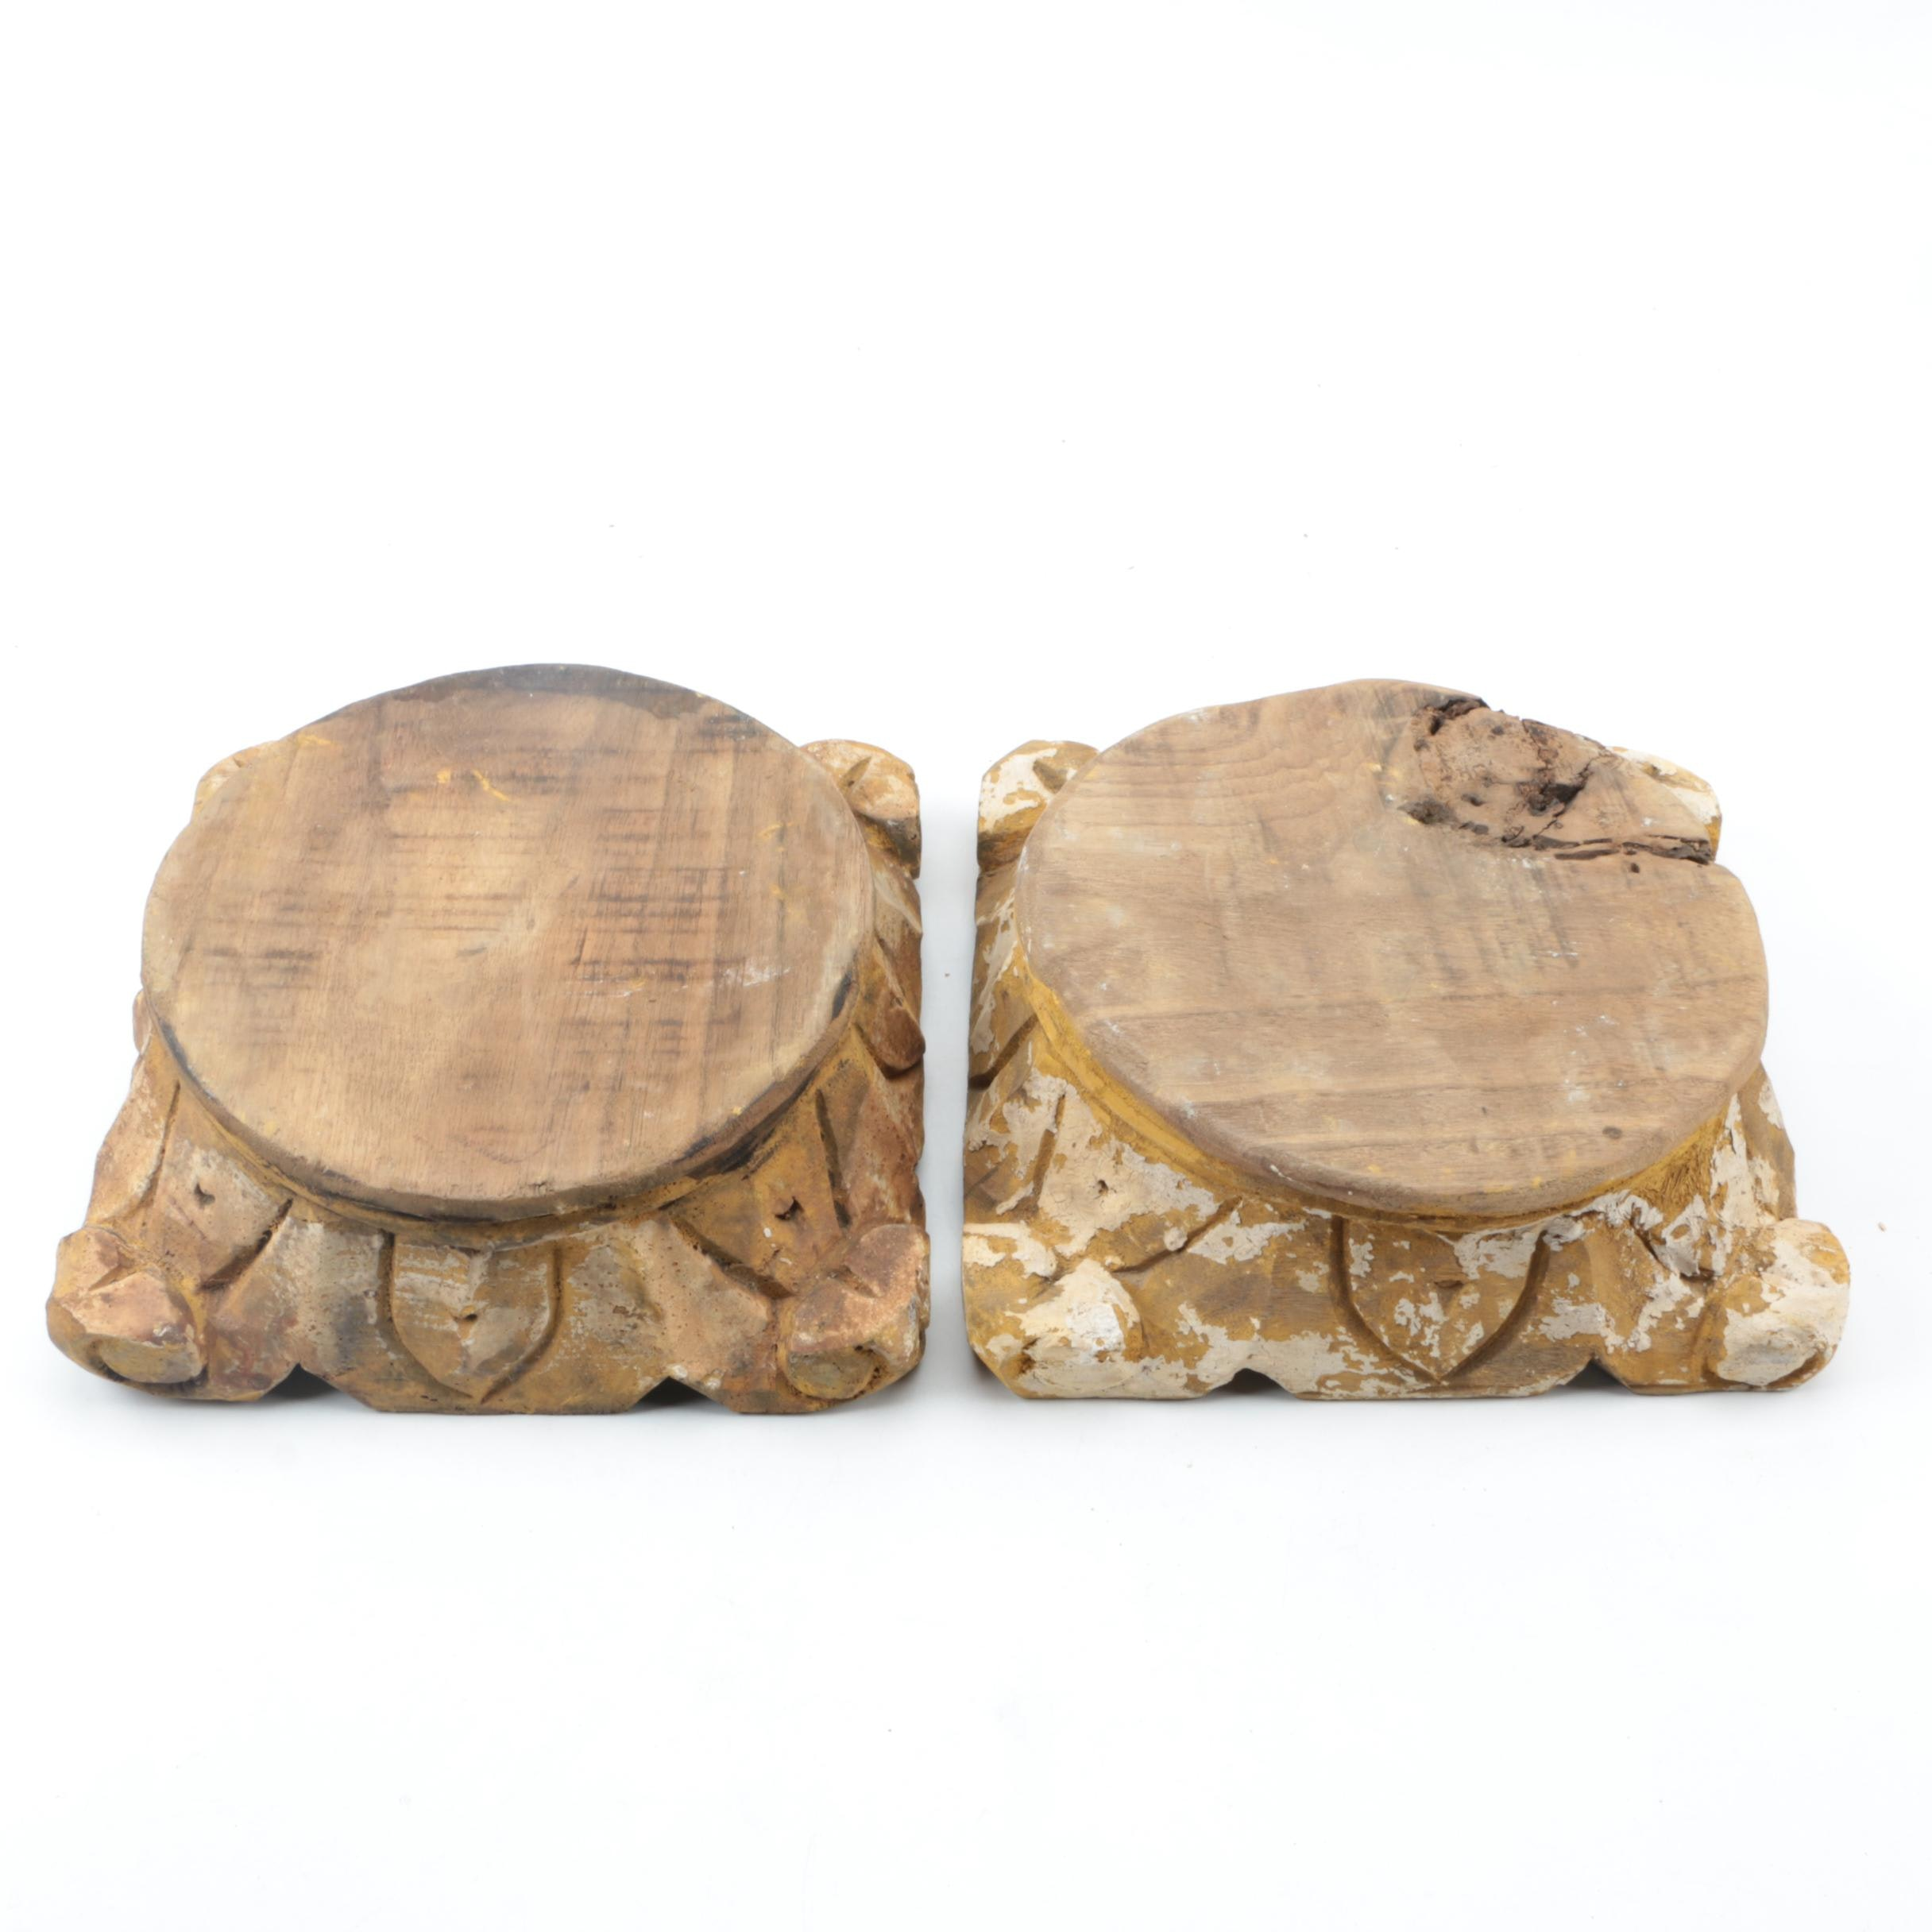 Pair of Carved Tree Stump Stands